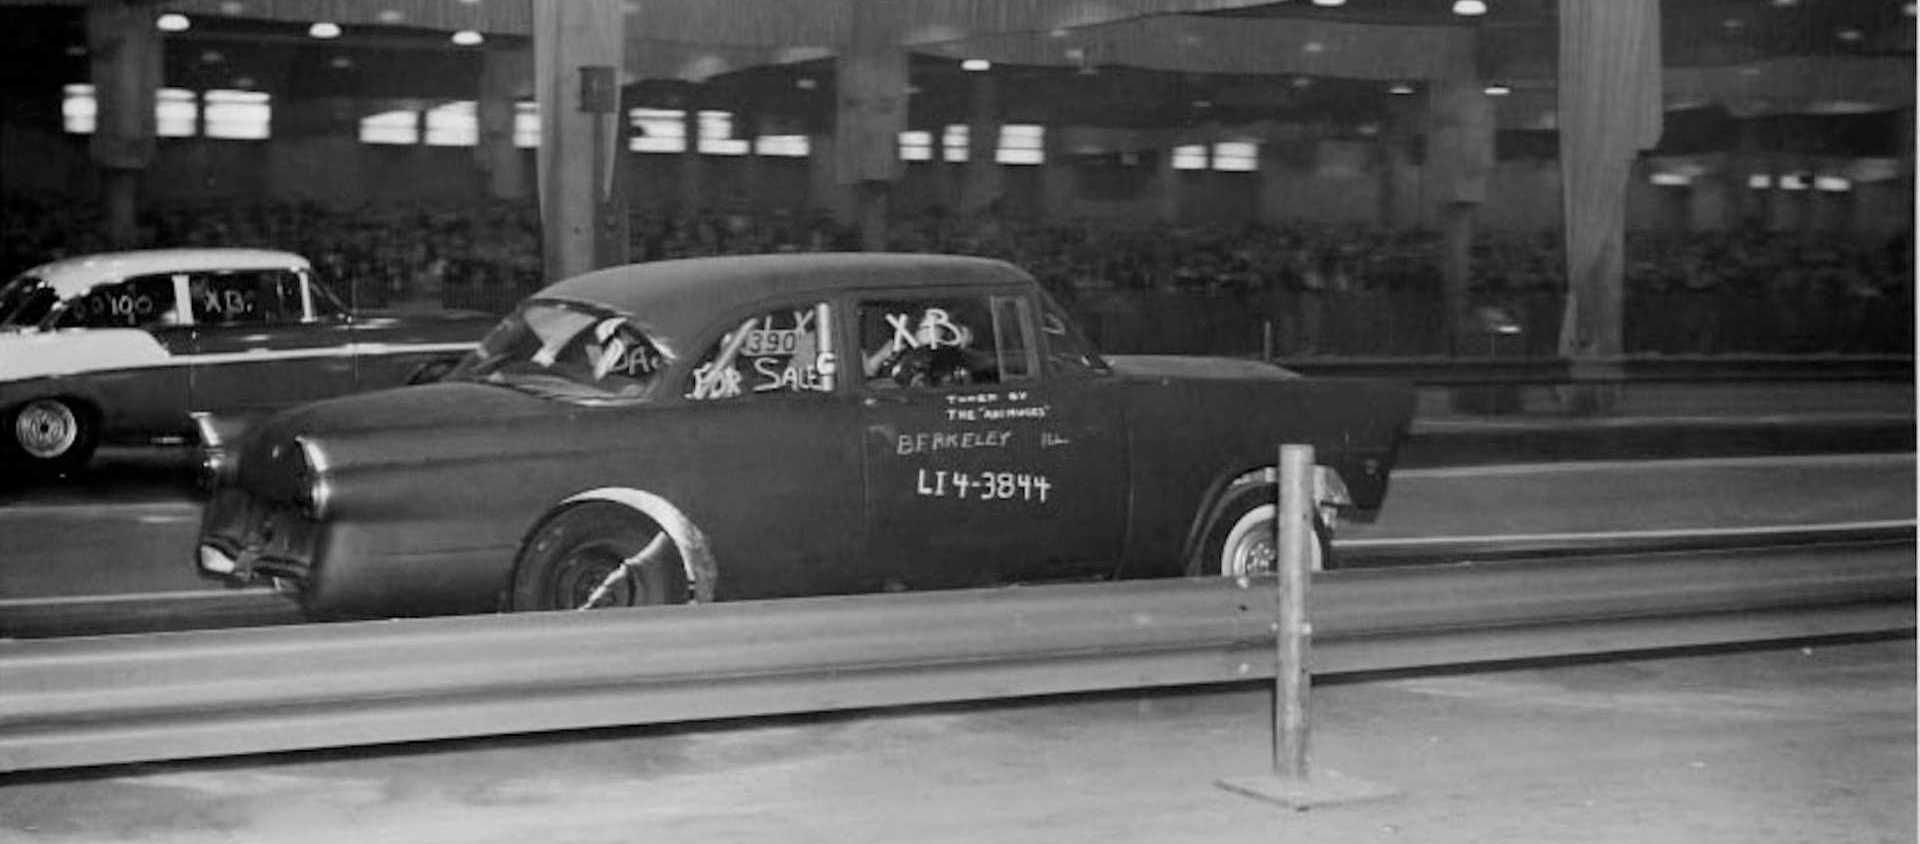 Indoor Drag Racing? It Used To Be a Thing In Chicago